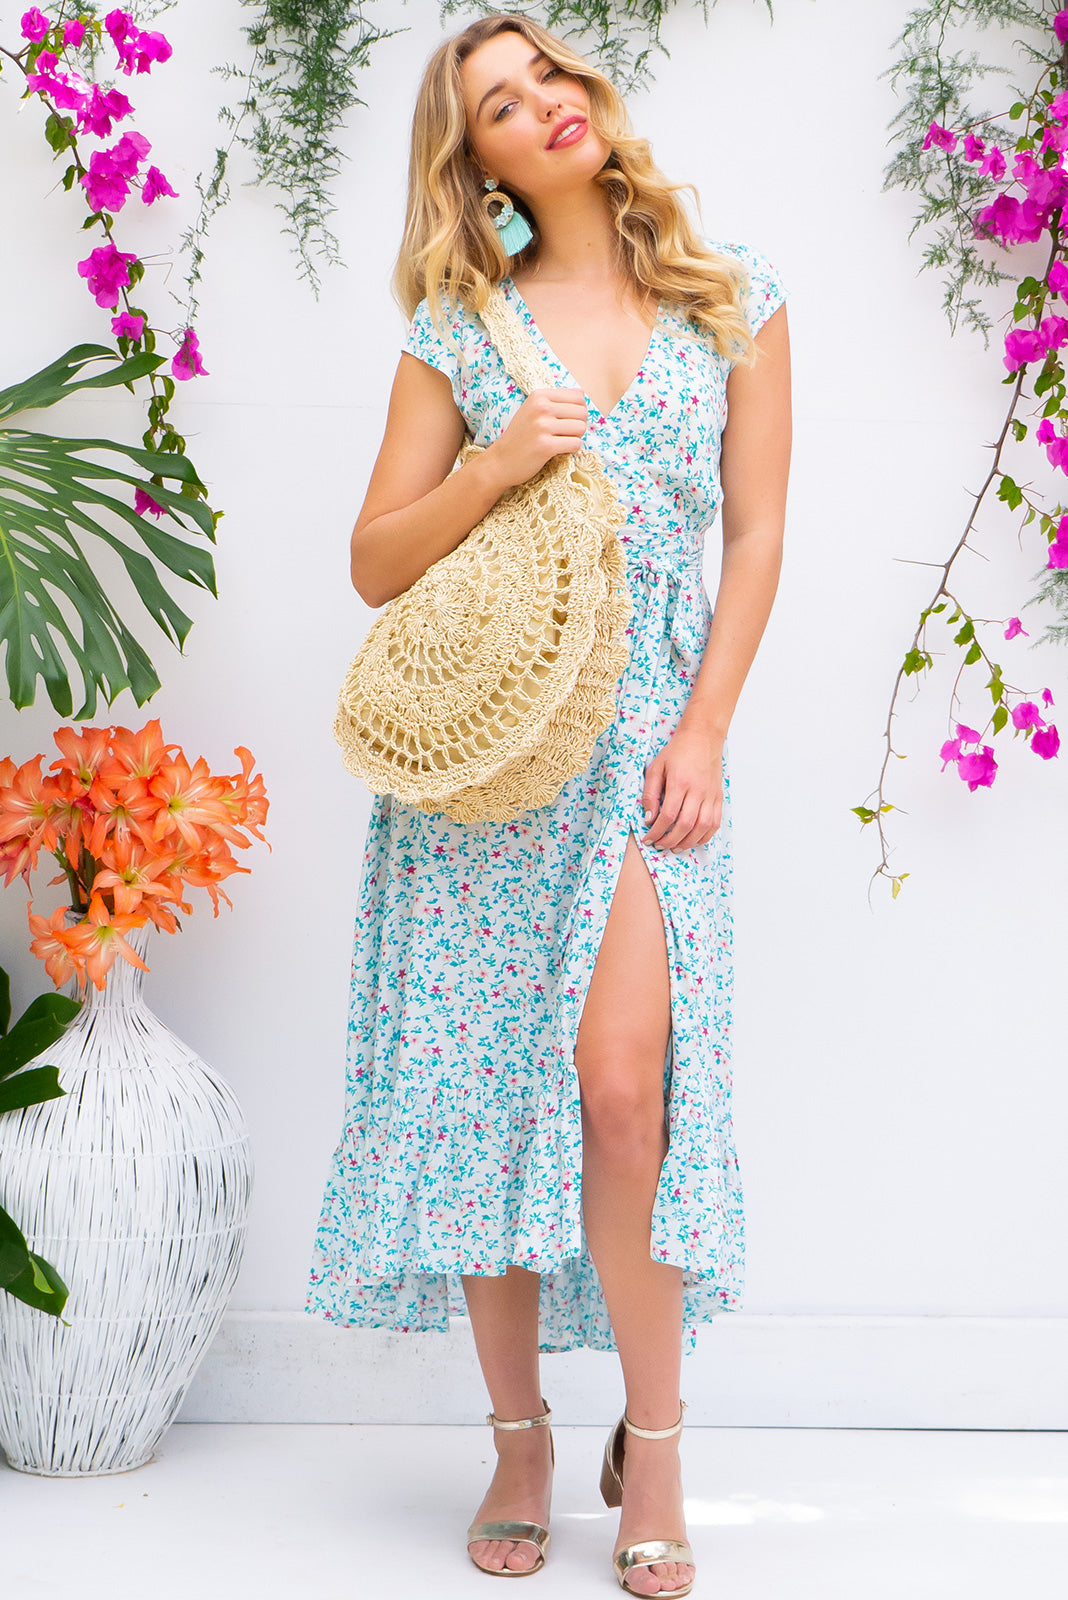 Symphony Ice Cream Maxi Wrap Dress with a fitted bodice, cap sleeve and frill around the hem in a bright white and blue ditzy floral print on soft rayon